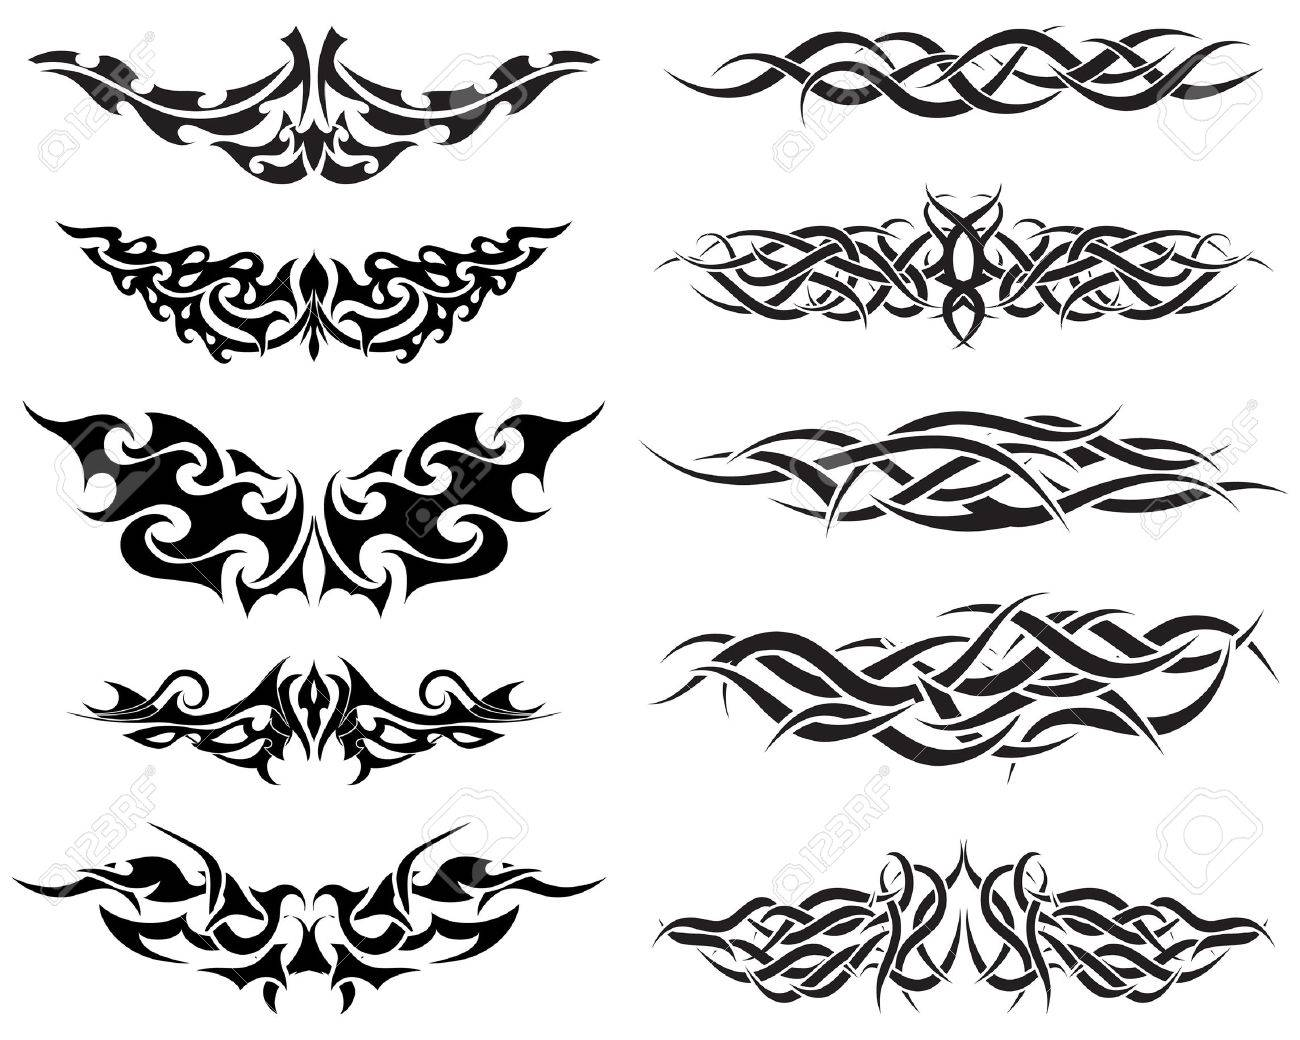 Tribal-Tattoos 5657485-Patterns-of-tribal-tattoo-for-design-use-Stock-Vector-tattoos